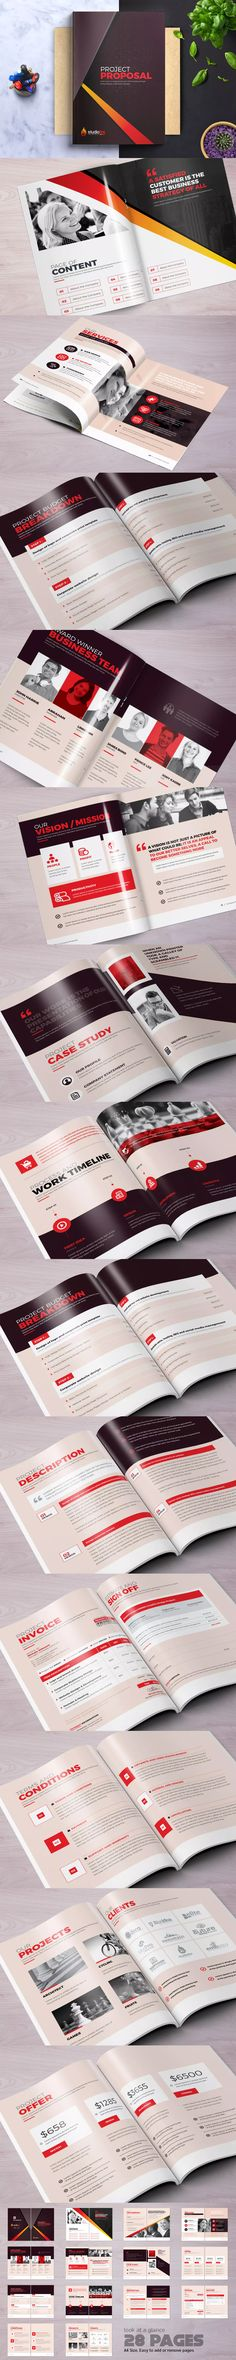 Project Proposal Design Template InDesign INDD A4